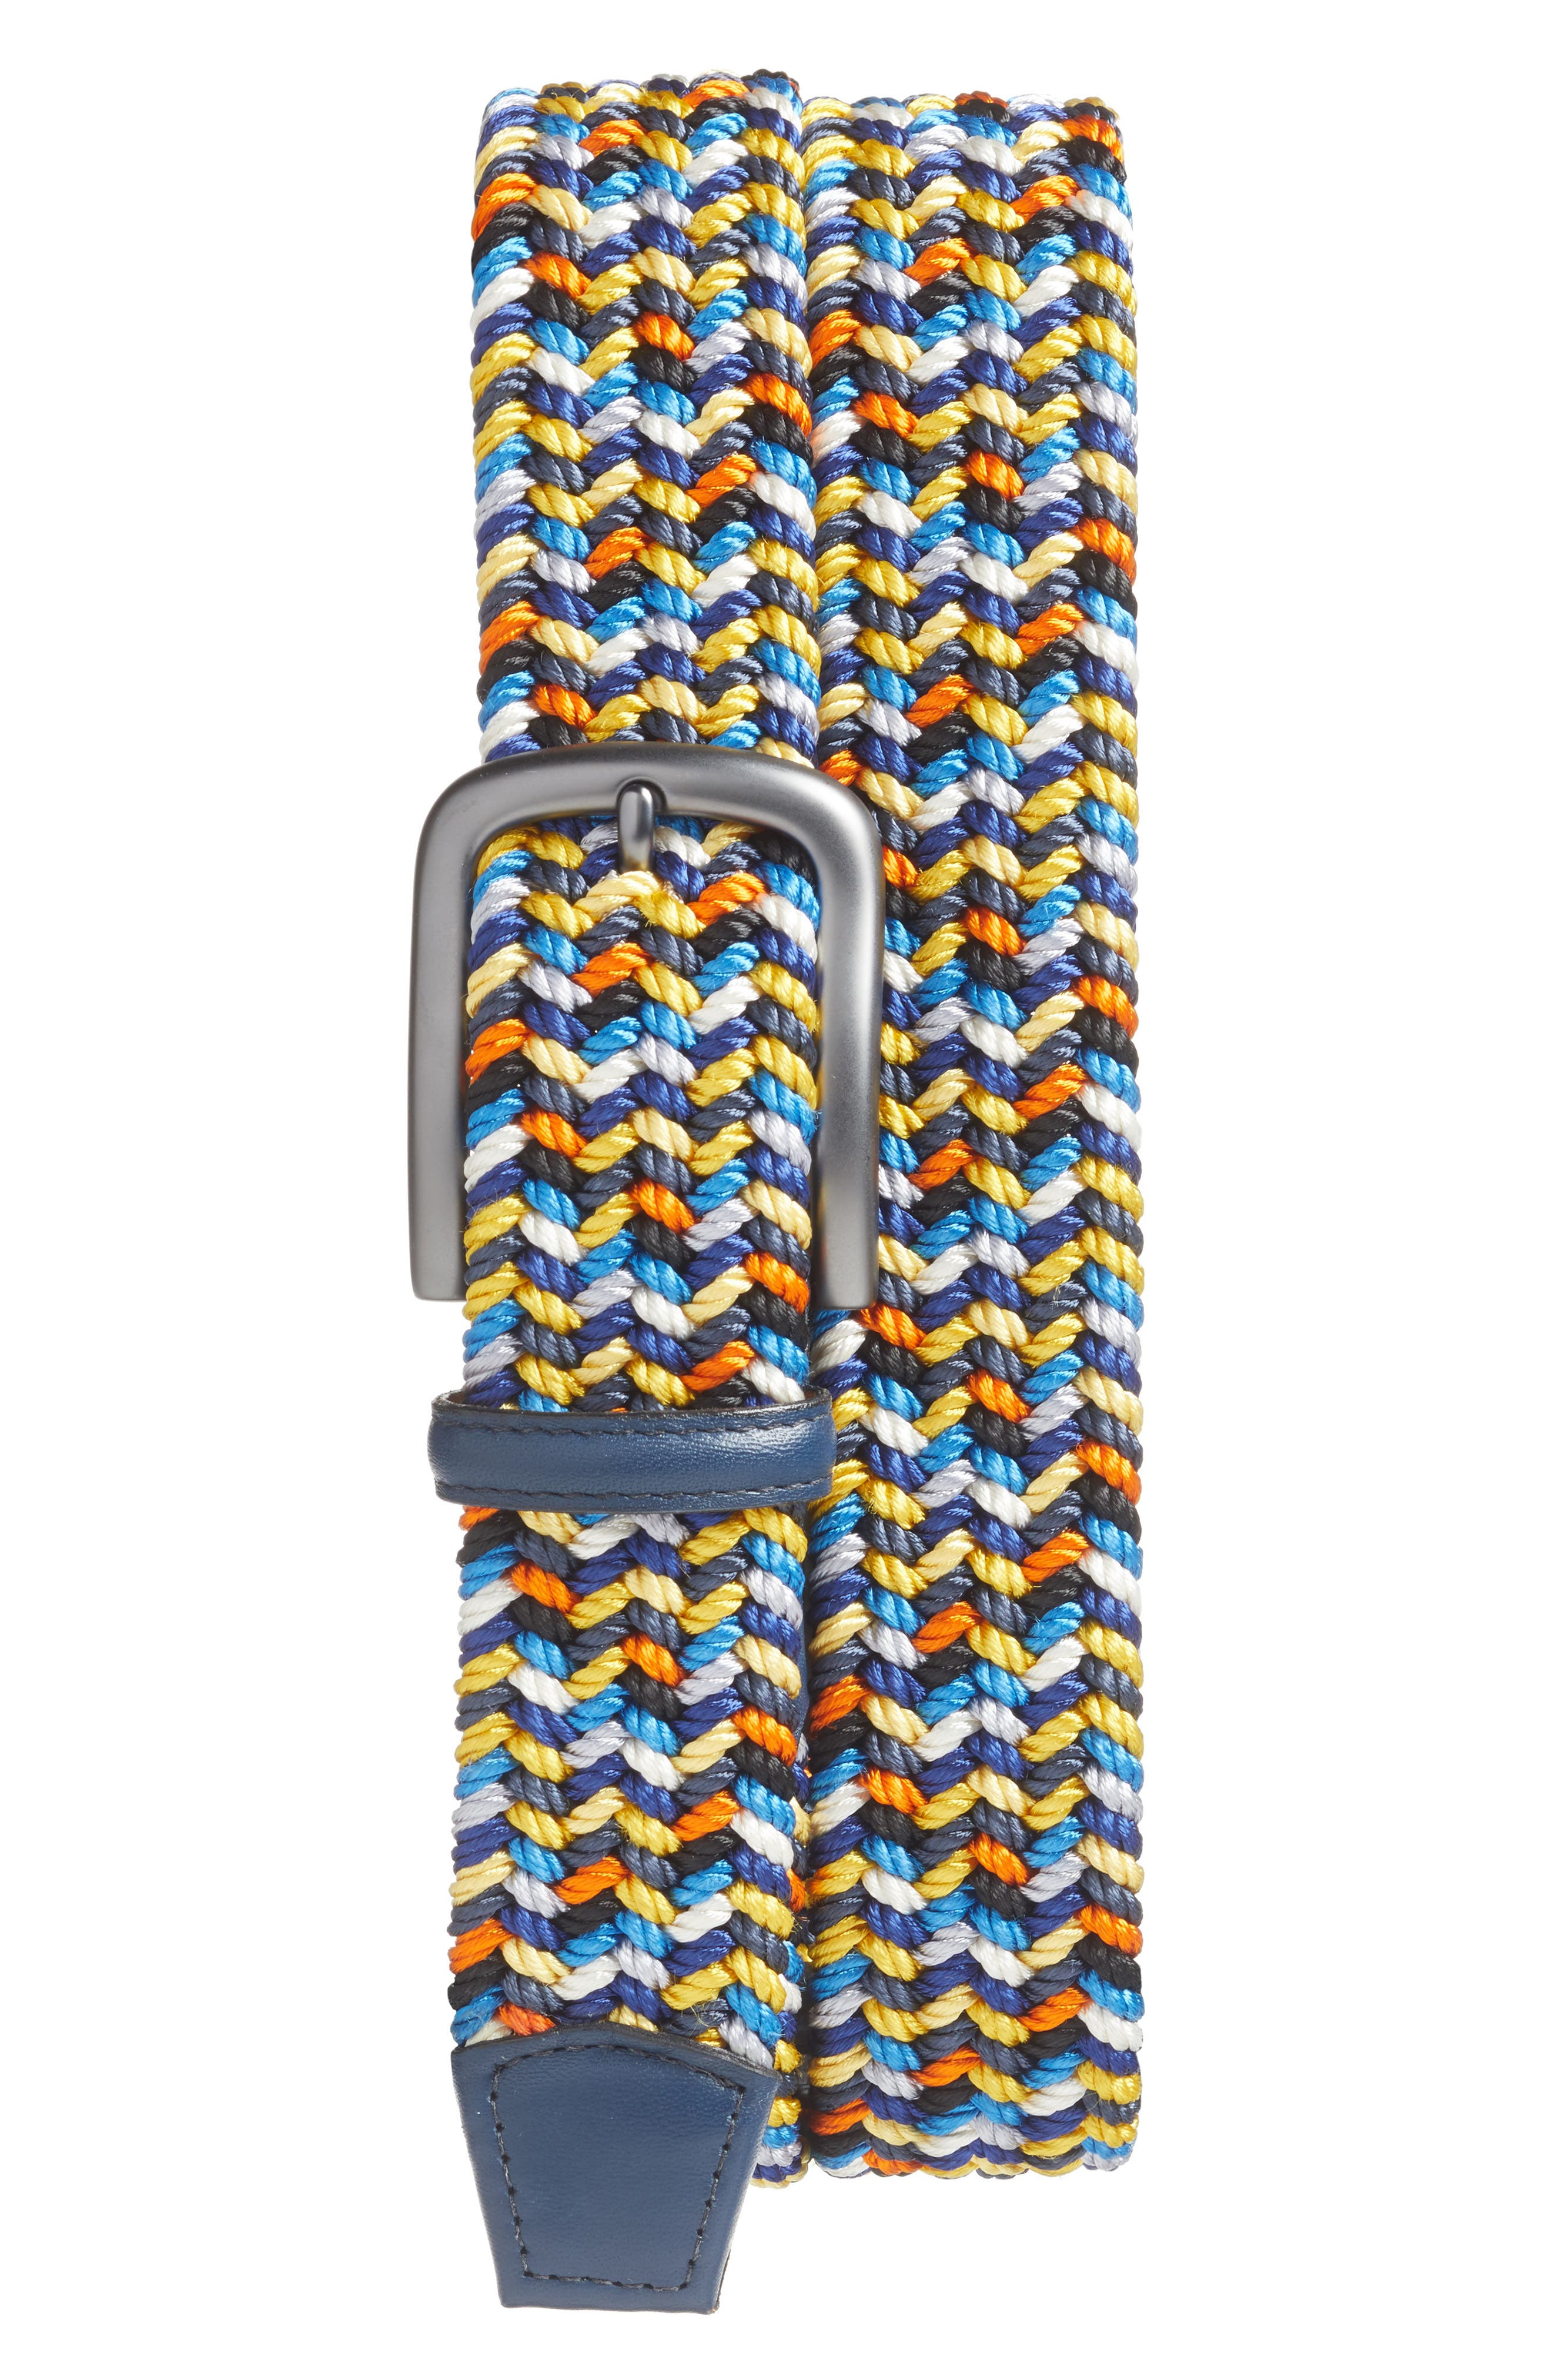 Woven multicolored rayon elevates a charmingly casual belt crafted in America and fitted with a bit of Italian leather trim. Style Name: Torino Woven Belt. Style Number: 5365704. Available in stores.